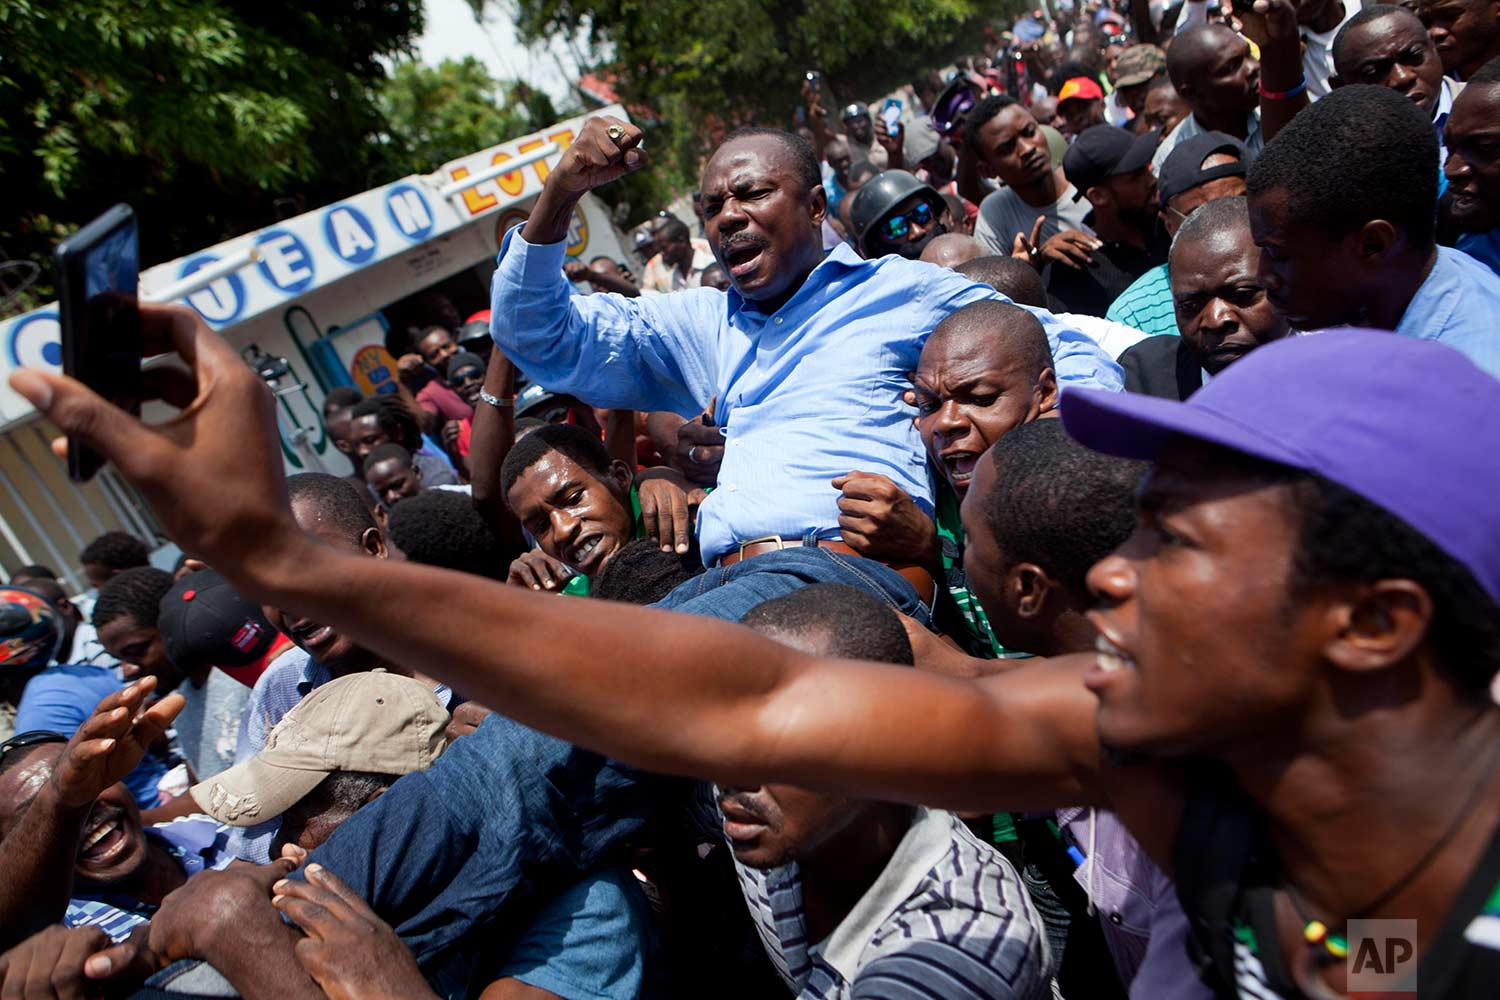 Former presidential candidate Moise Jean-Charles, from the Platform Pitit Dessalines party, is carried by supporters after national police officers attempted to detain him in Delmas, a district of Port-au-Prince, Haiti, Wednesday, Sept. 13, 2017. (AP Photo/Dieu Nalio Chery)